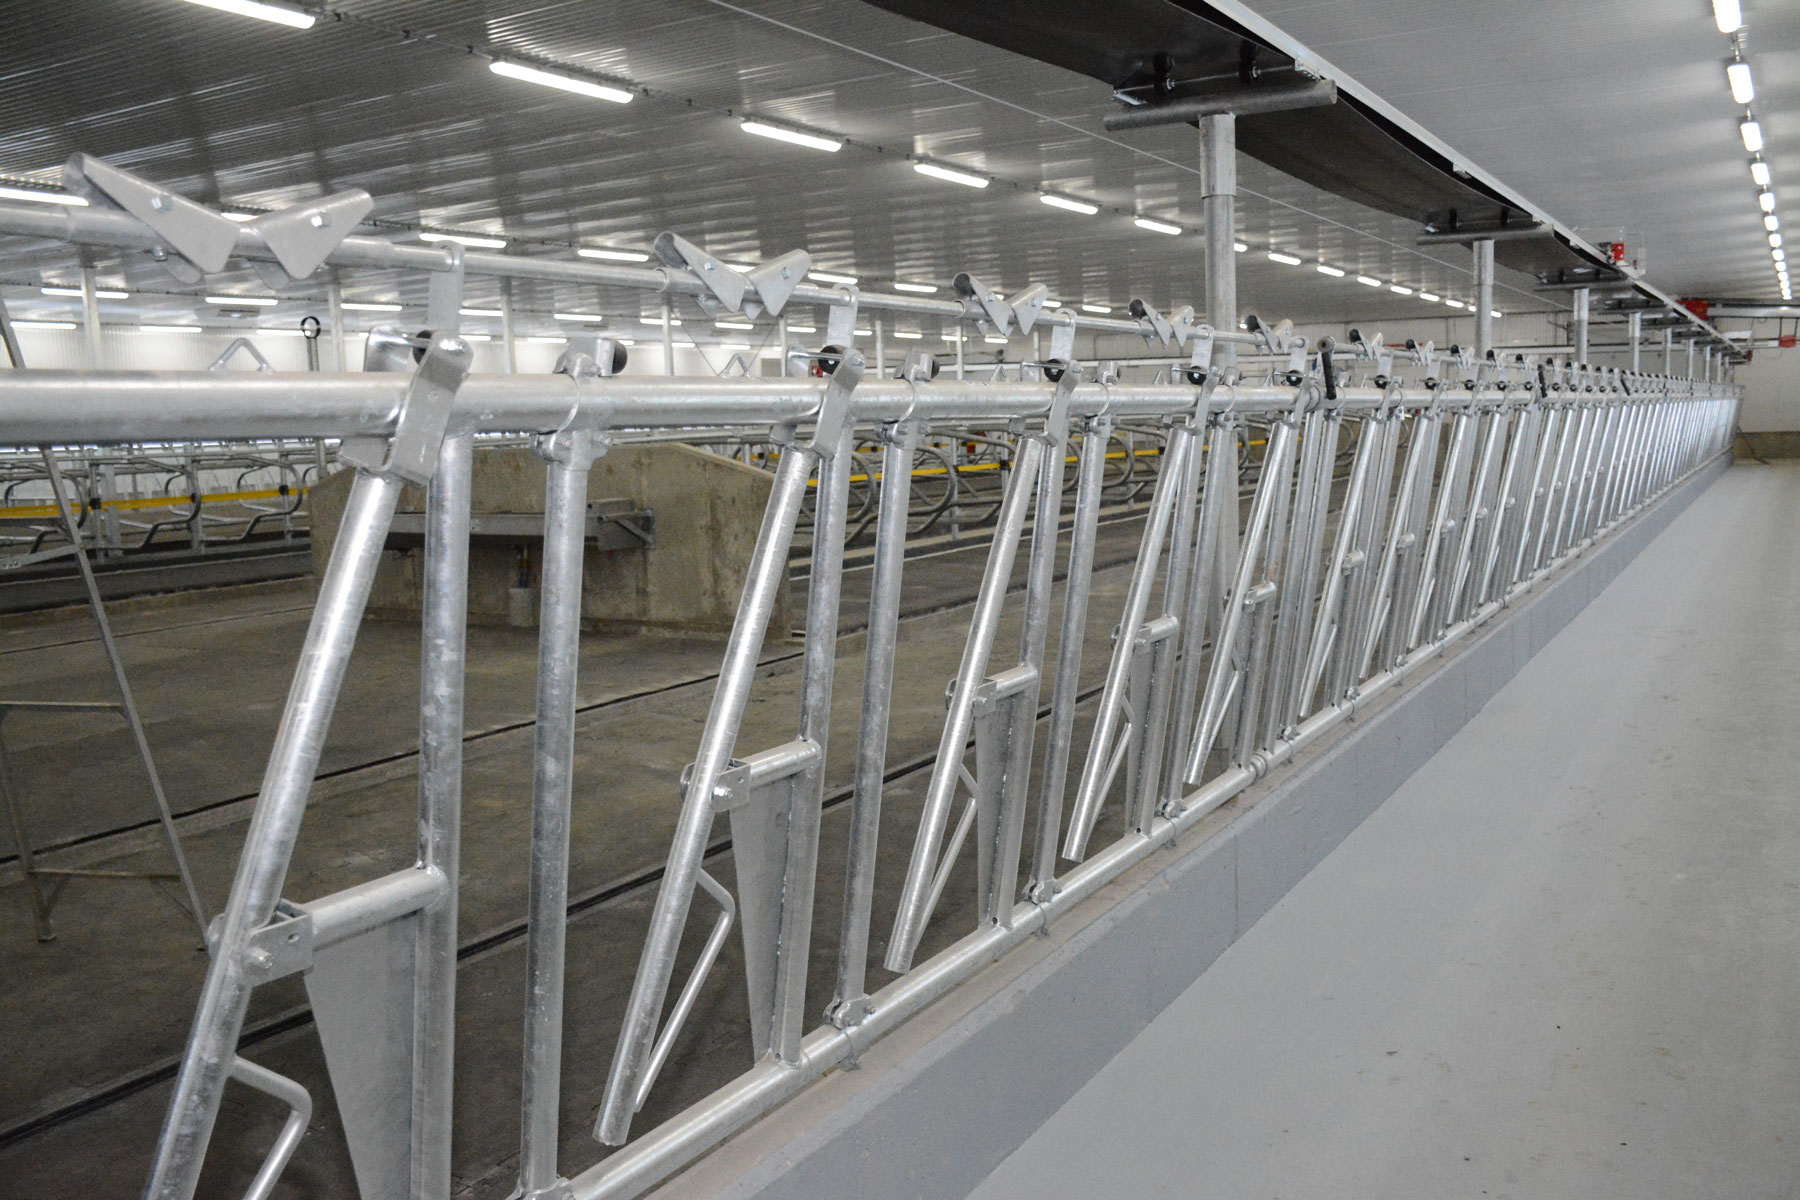 mangeoire carcan stabulation installation agricole / Équipements PFB